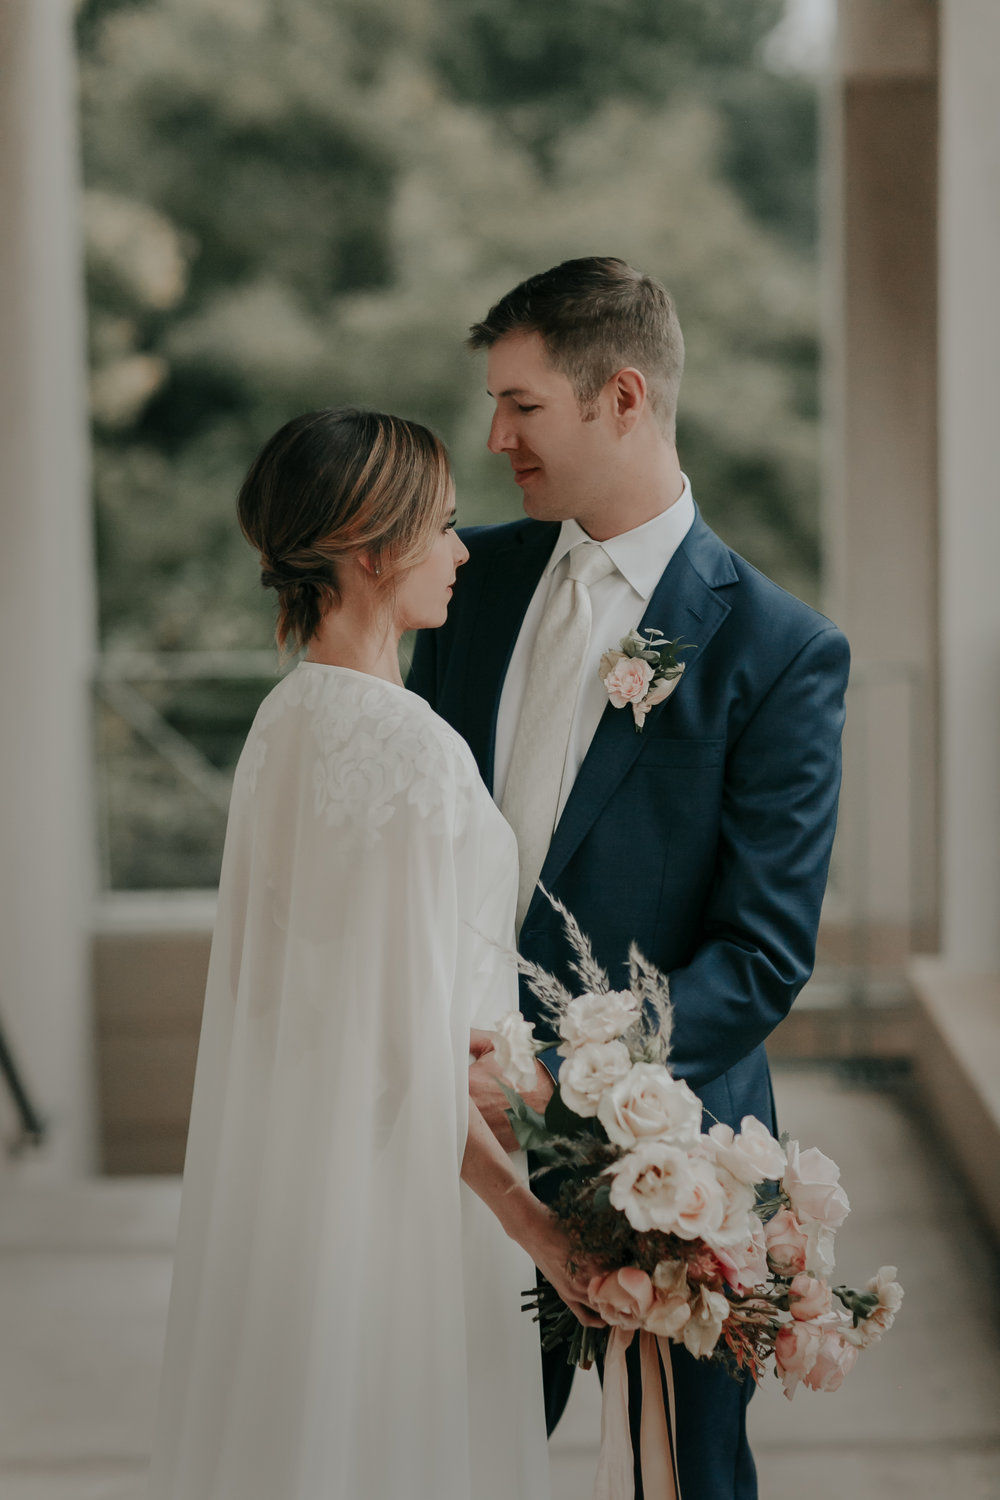 Bride+Groom10.13.18-37.jpg